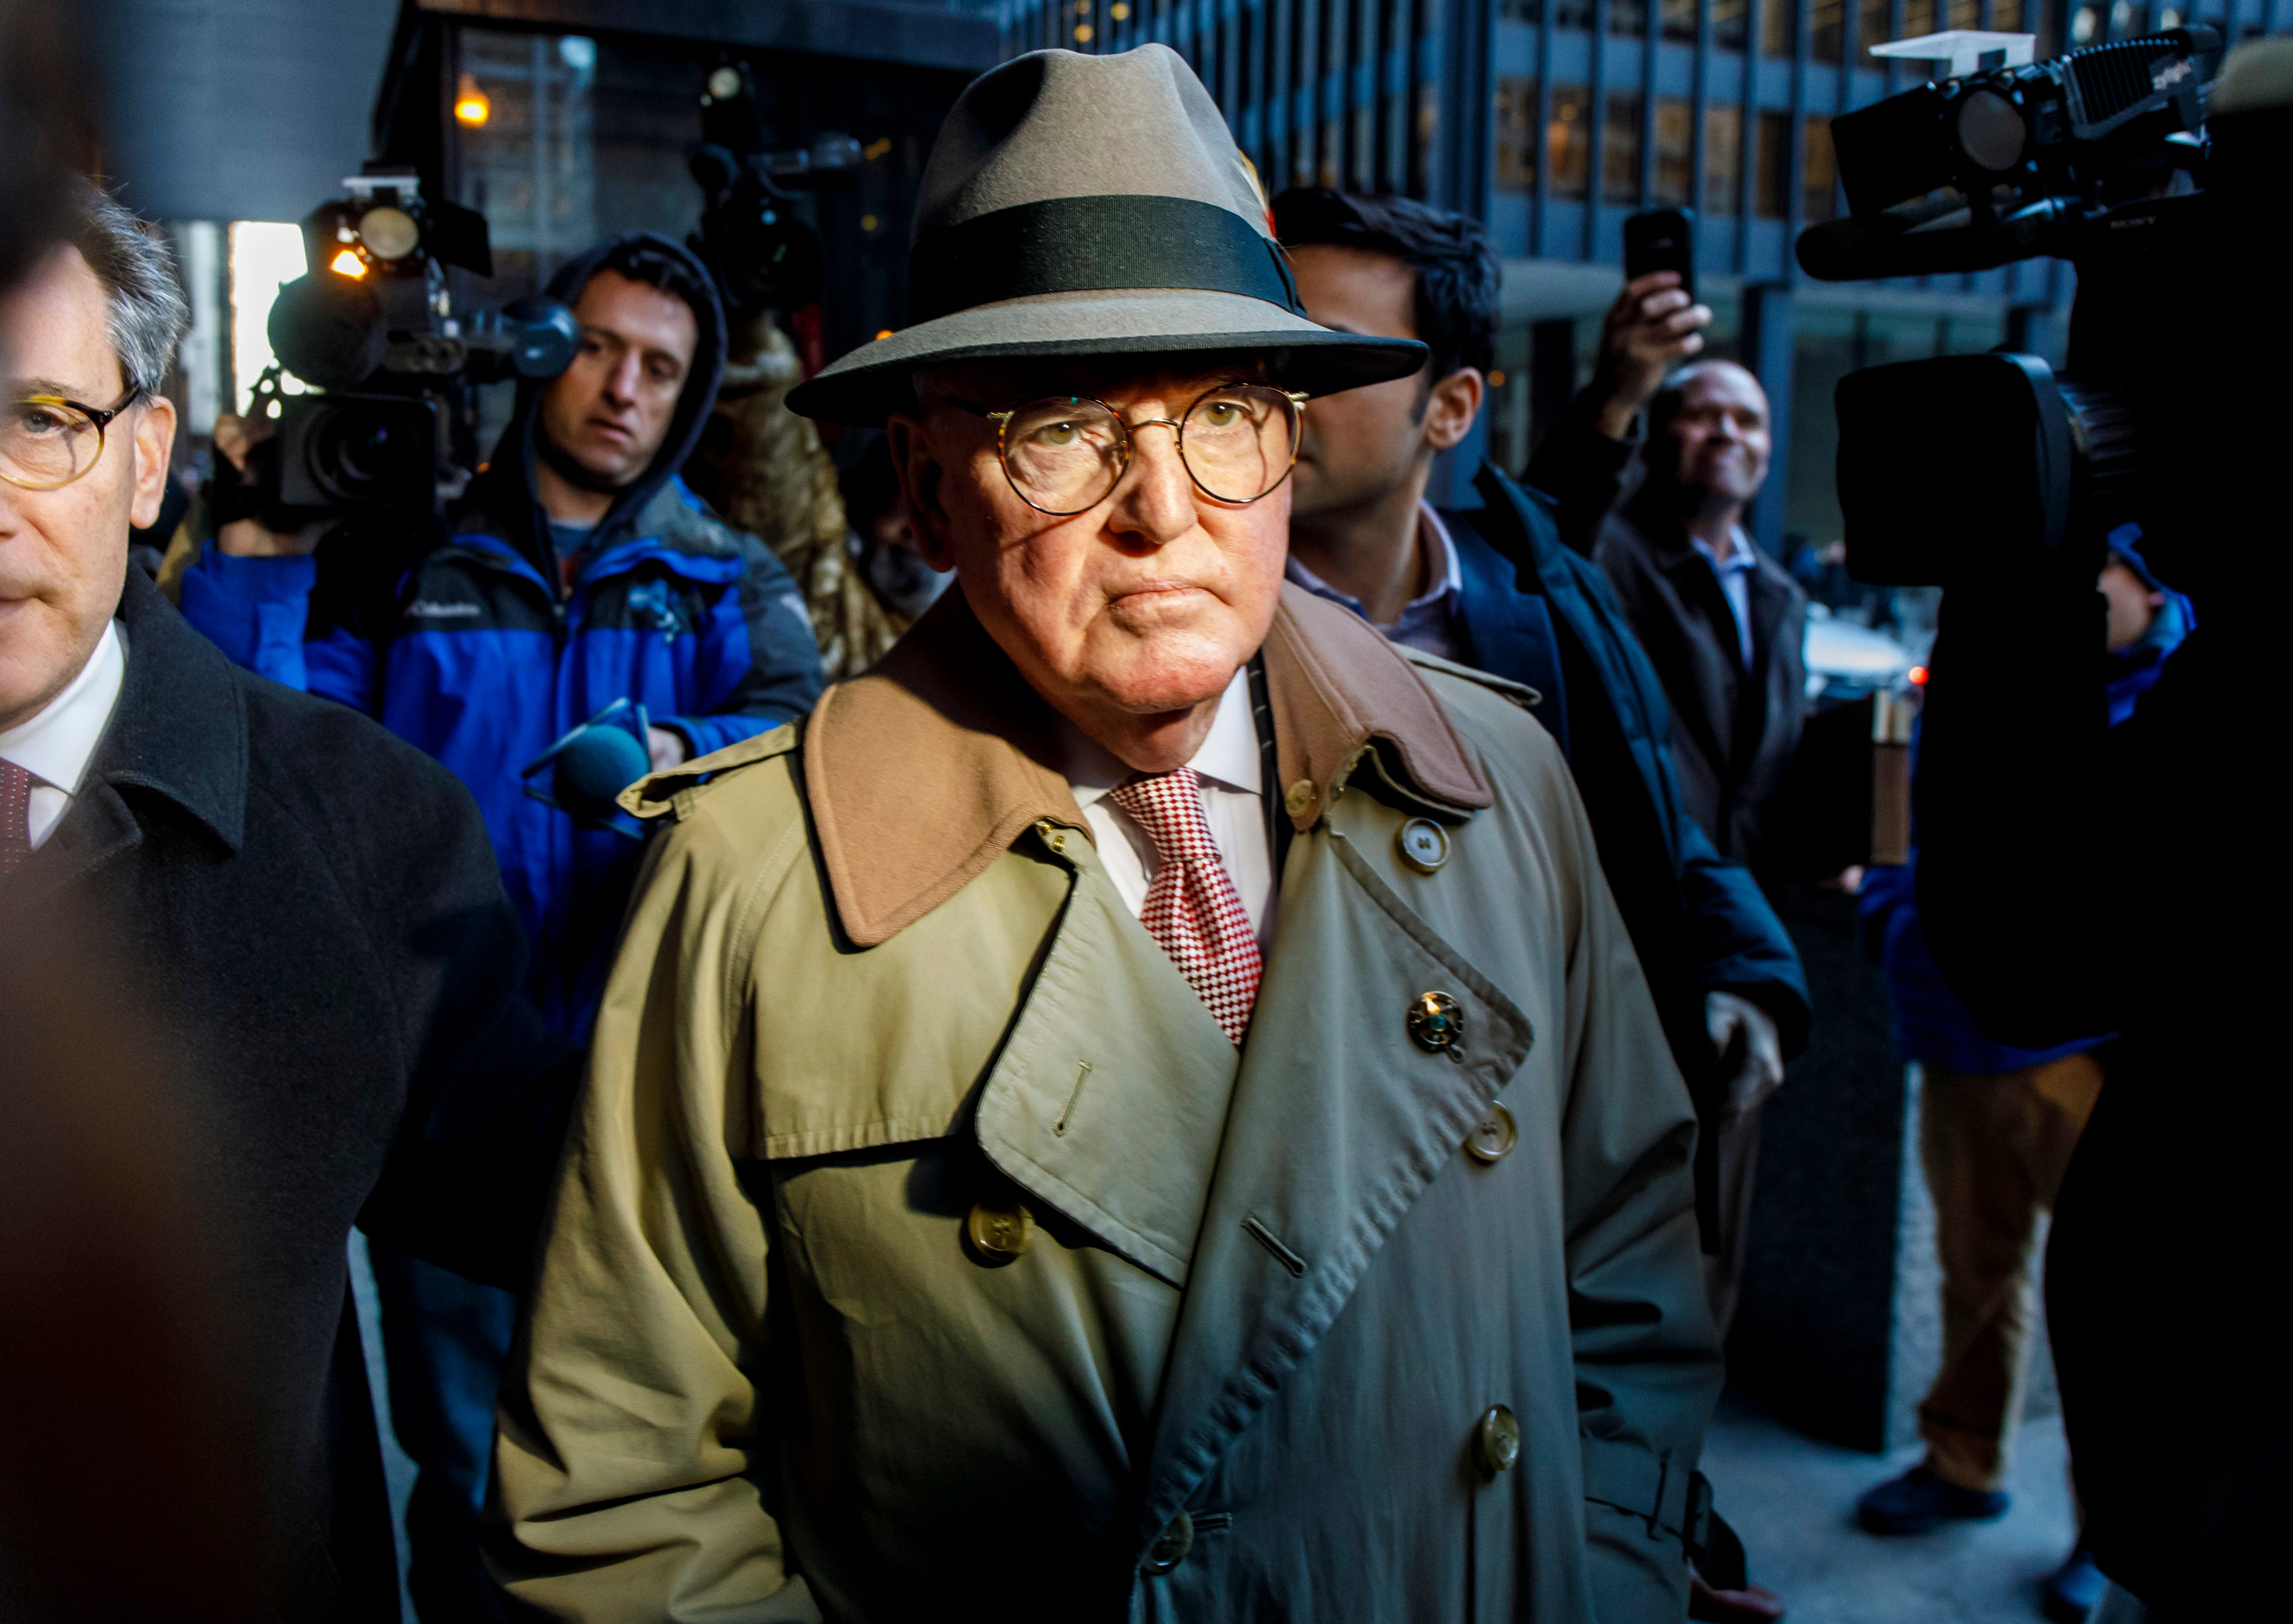 Alderman Ed Burke, 75, walks out of the Dirksen Federal Courthouse following his release after turning himself in  Jan. 3, 2019, in Chicago. Burke, one of the most powerful City Council members in Chicago, is charged with one count of attempted extortion in trying to shake down a fast-food restaurant seeking city remodeling permits, according to a federal complaint.